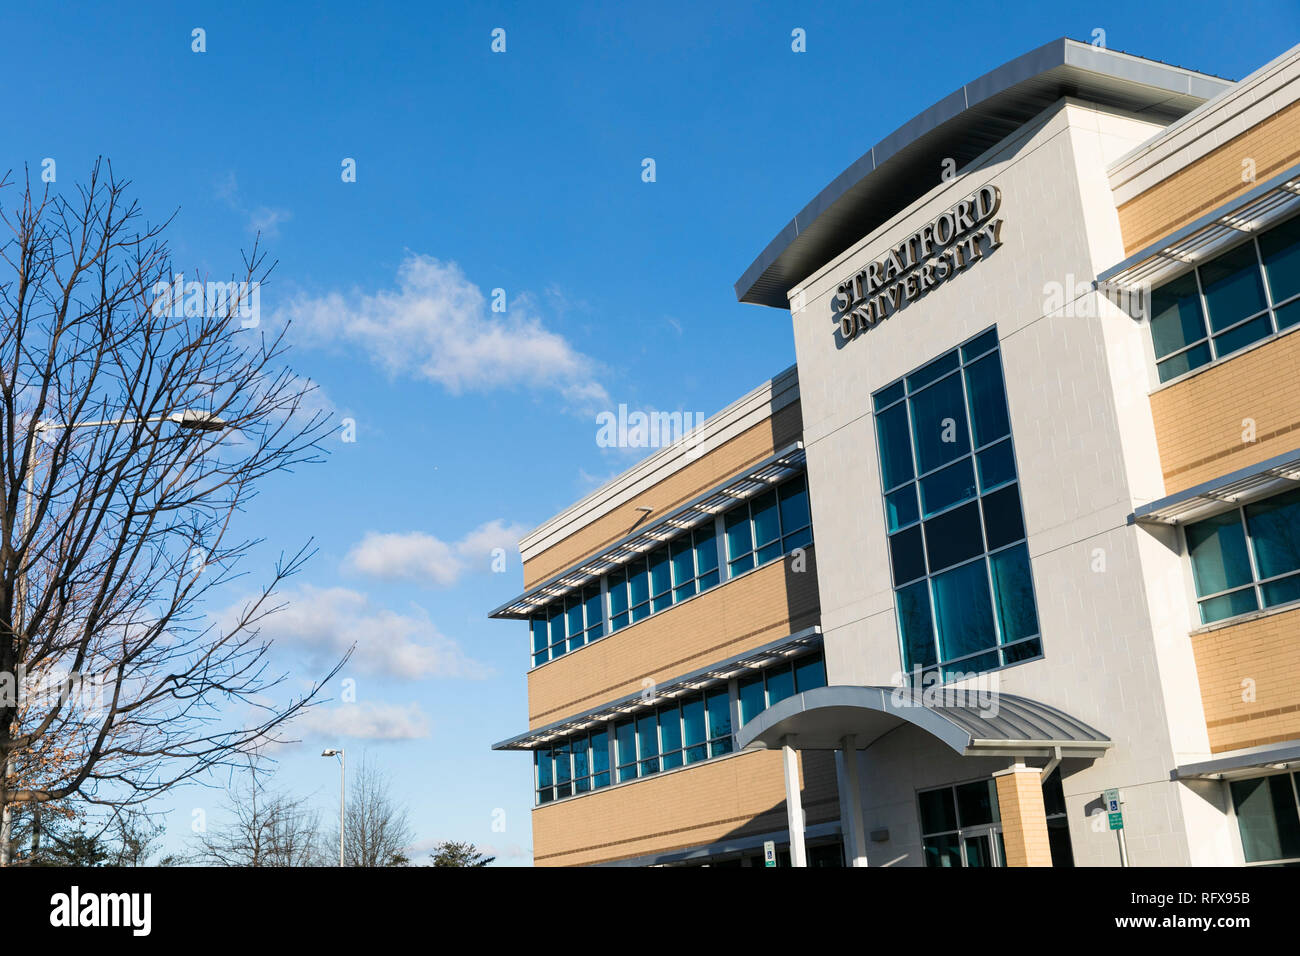 A logo sign outside of a facility occupied by Stratford University in Woodbridge, Virginia, on January 21, 2019. - Stock Image